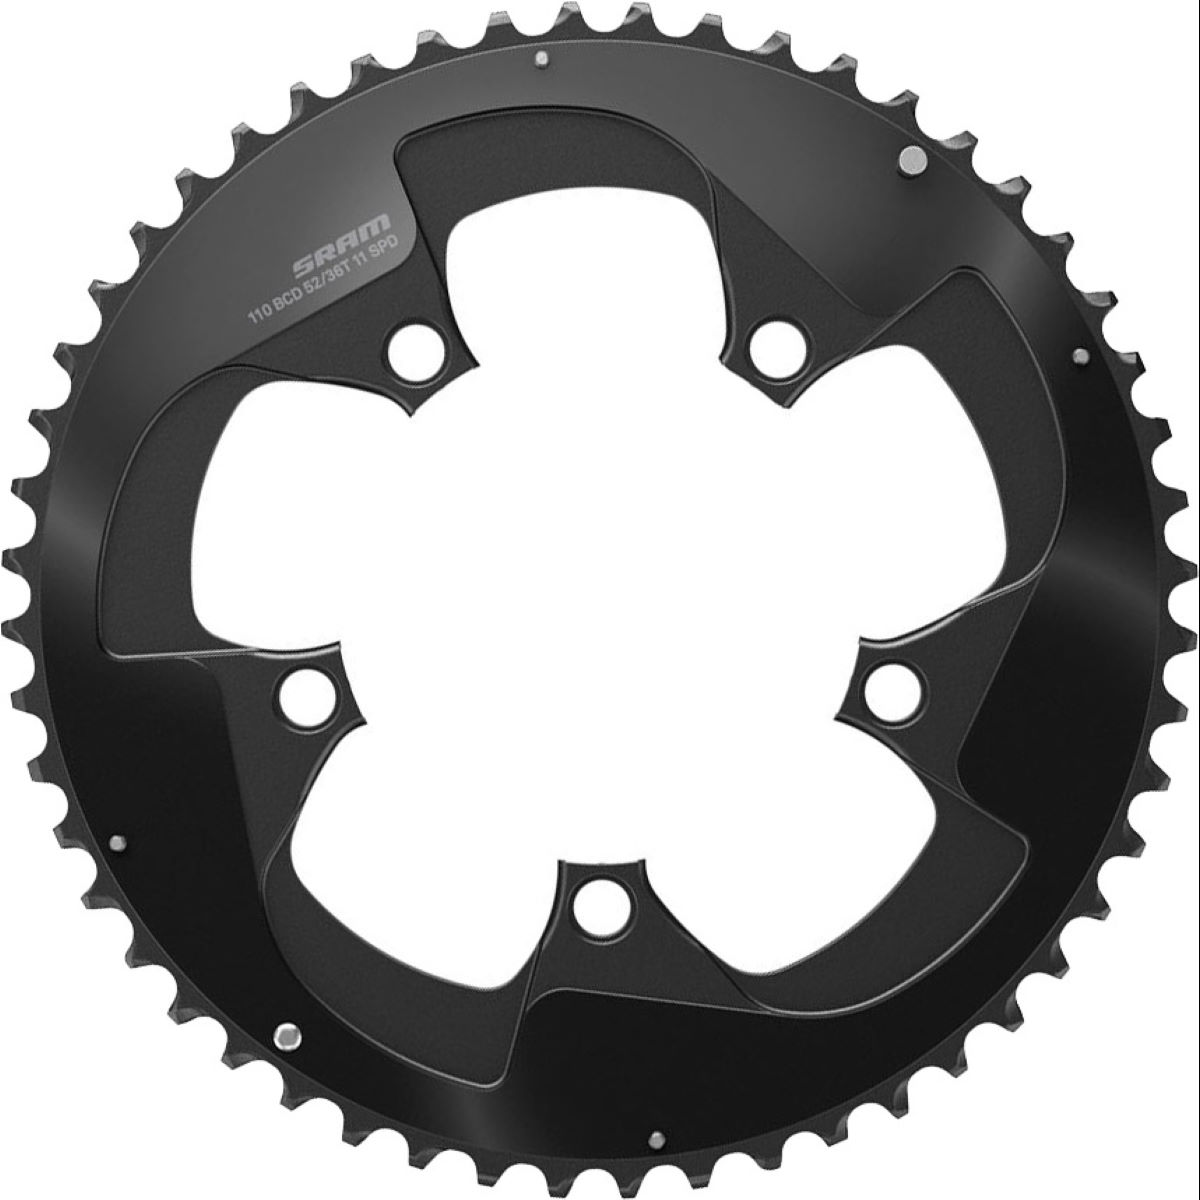 Sram Red X-glide Road Chain Ring - 52t Black  Chain Rings